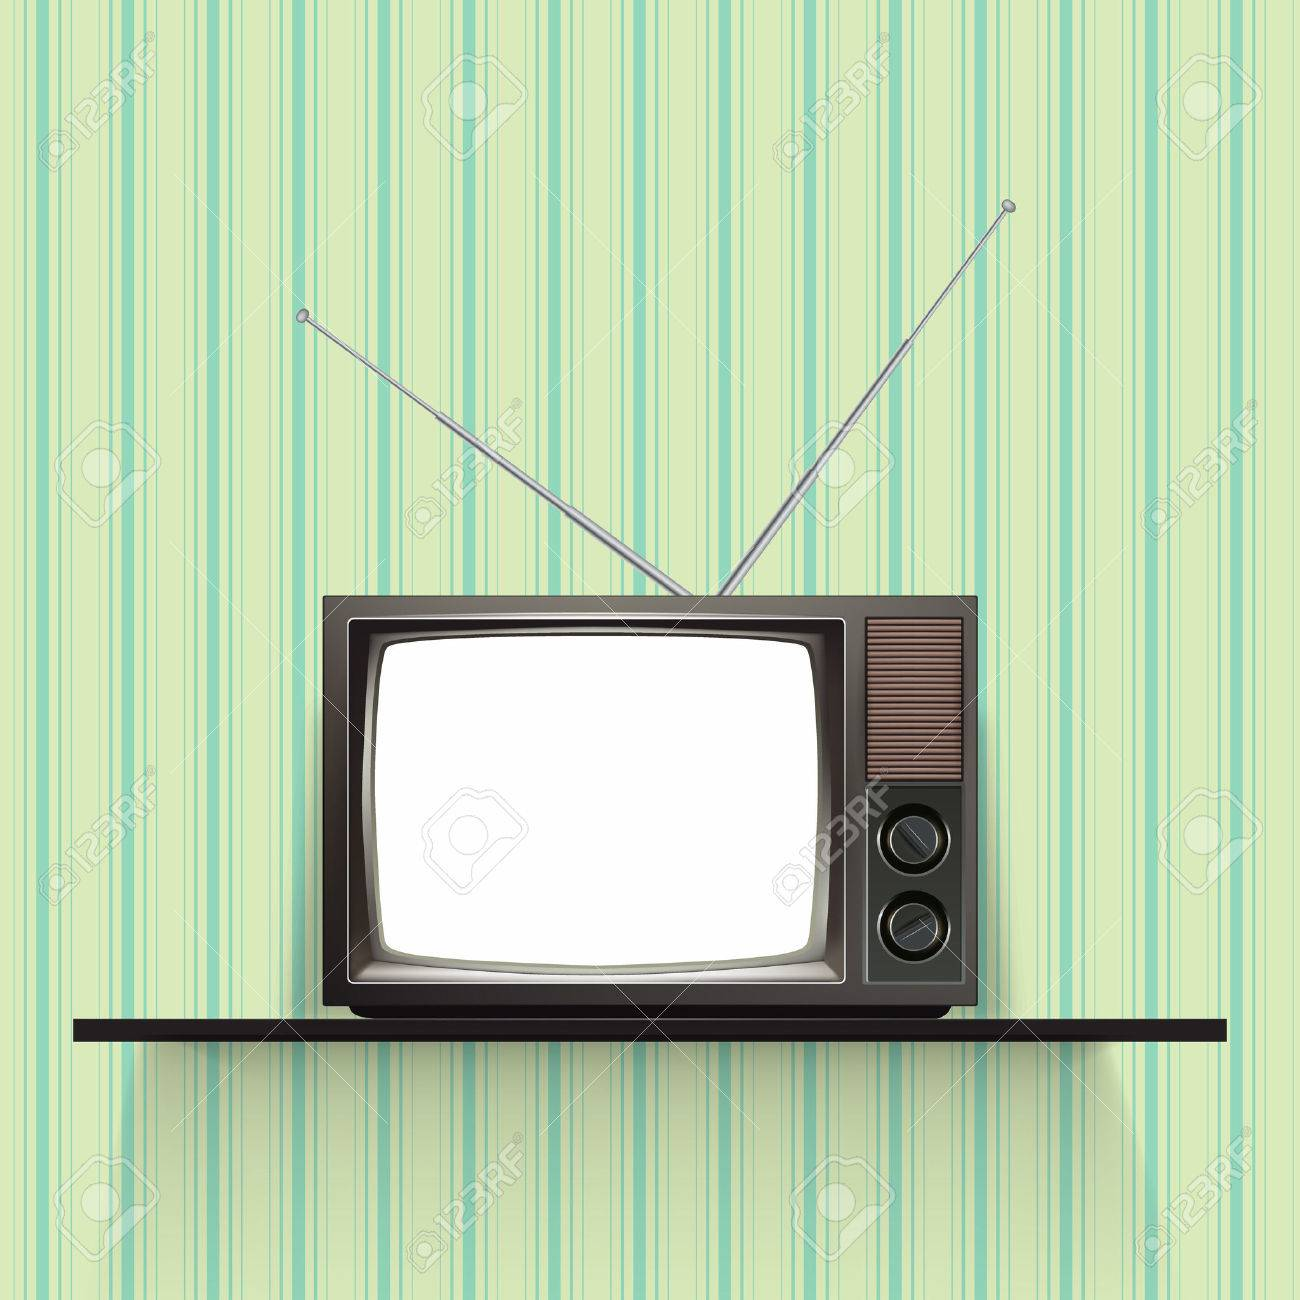 Blank Retro Tv With Vintage Wallpaper Realistic Vector Illustration Stock